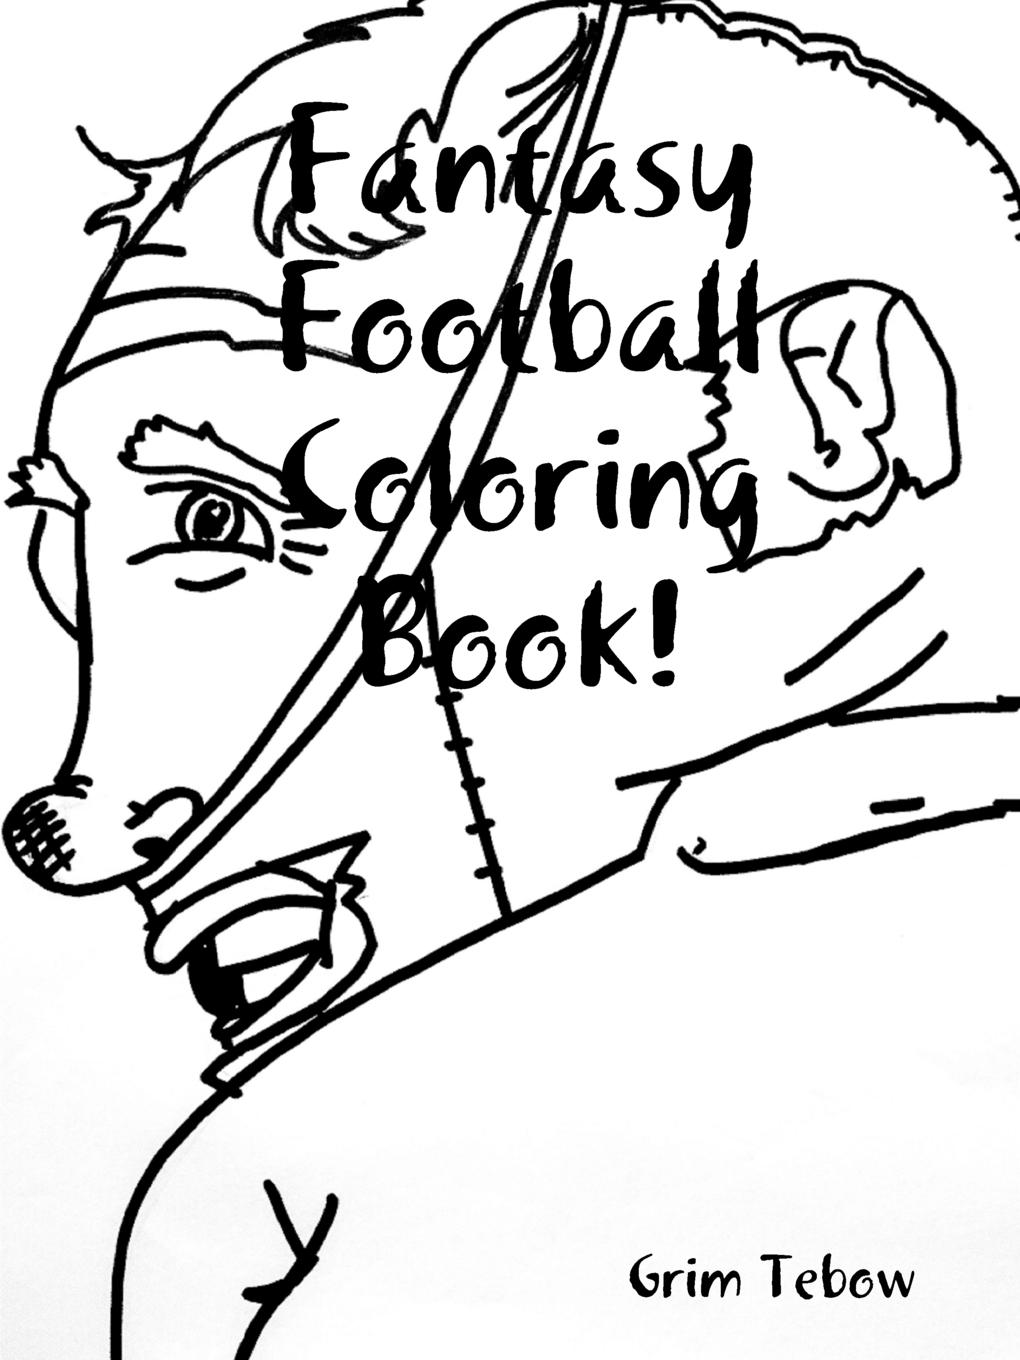 Grim Tebow Fantasy Football Coloring Book. martin signore fantasy football for dummies